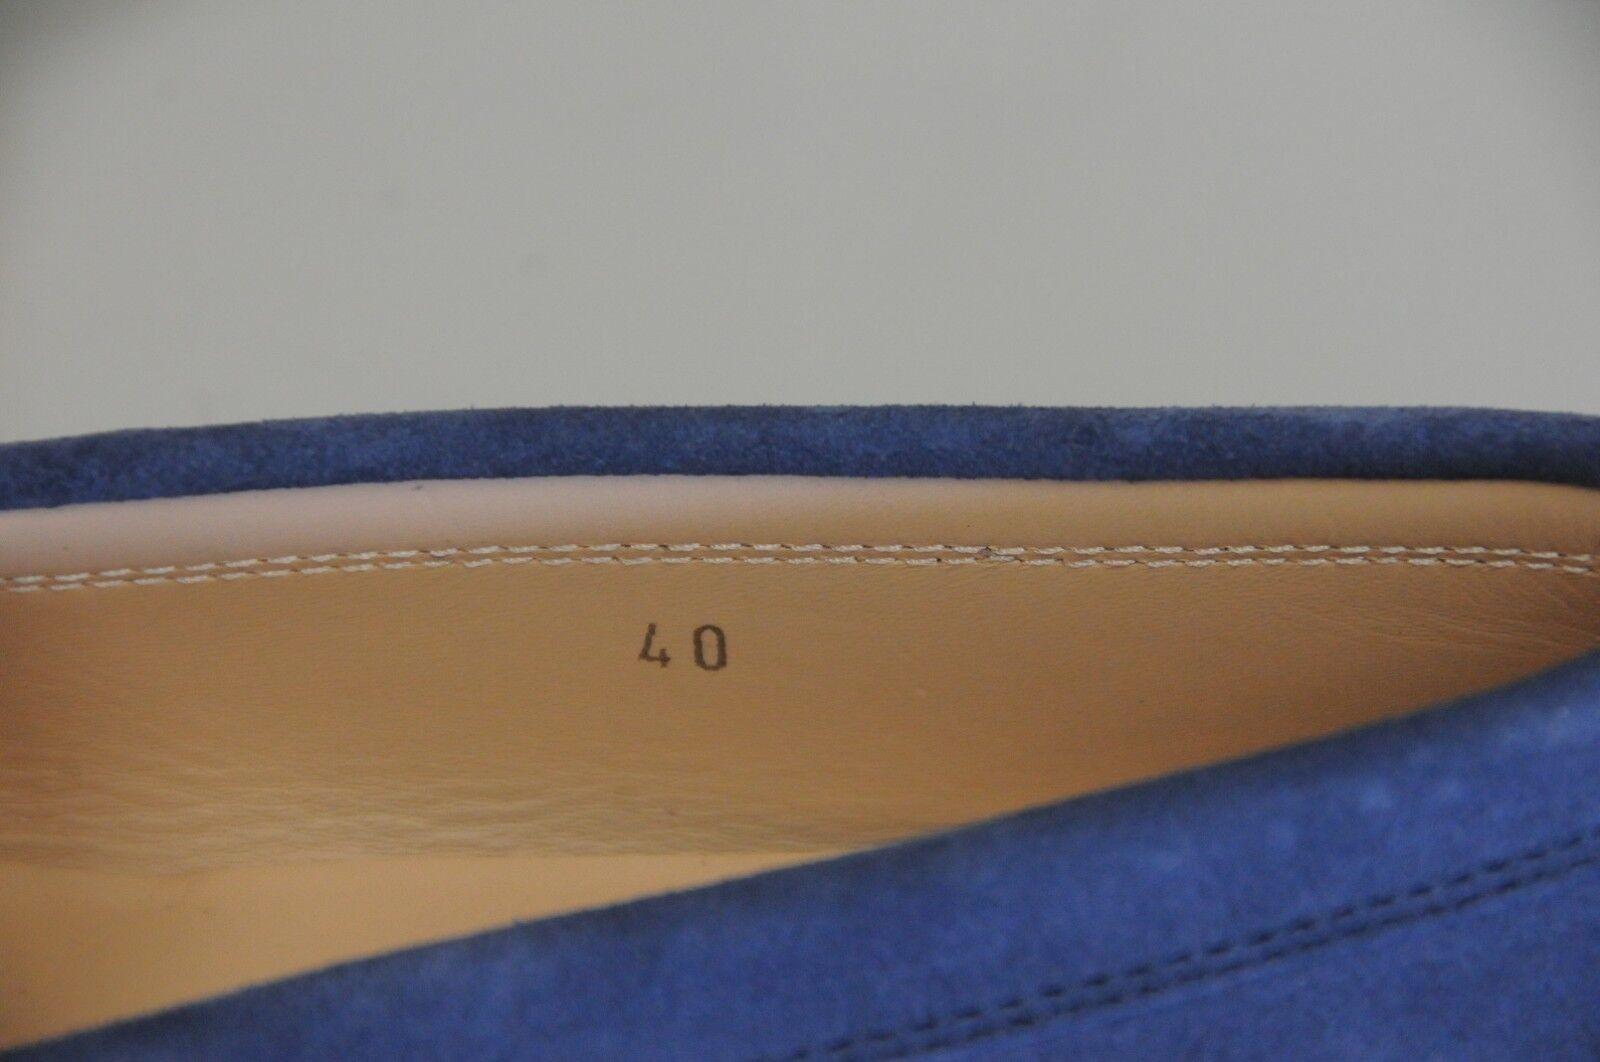 New TOD'S Driving Tods Flats Mocassins Penny Driving TOD'S Moccasins Navy blau Suede schuhes 40 b505fd